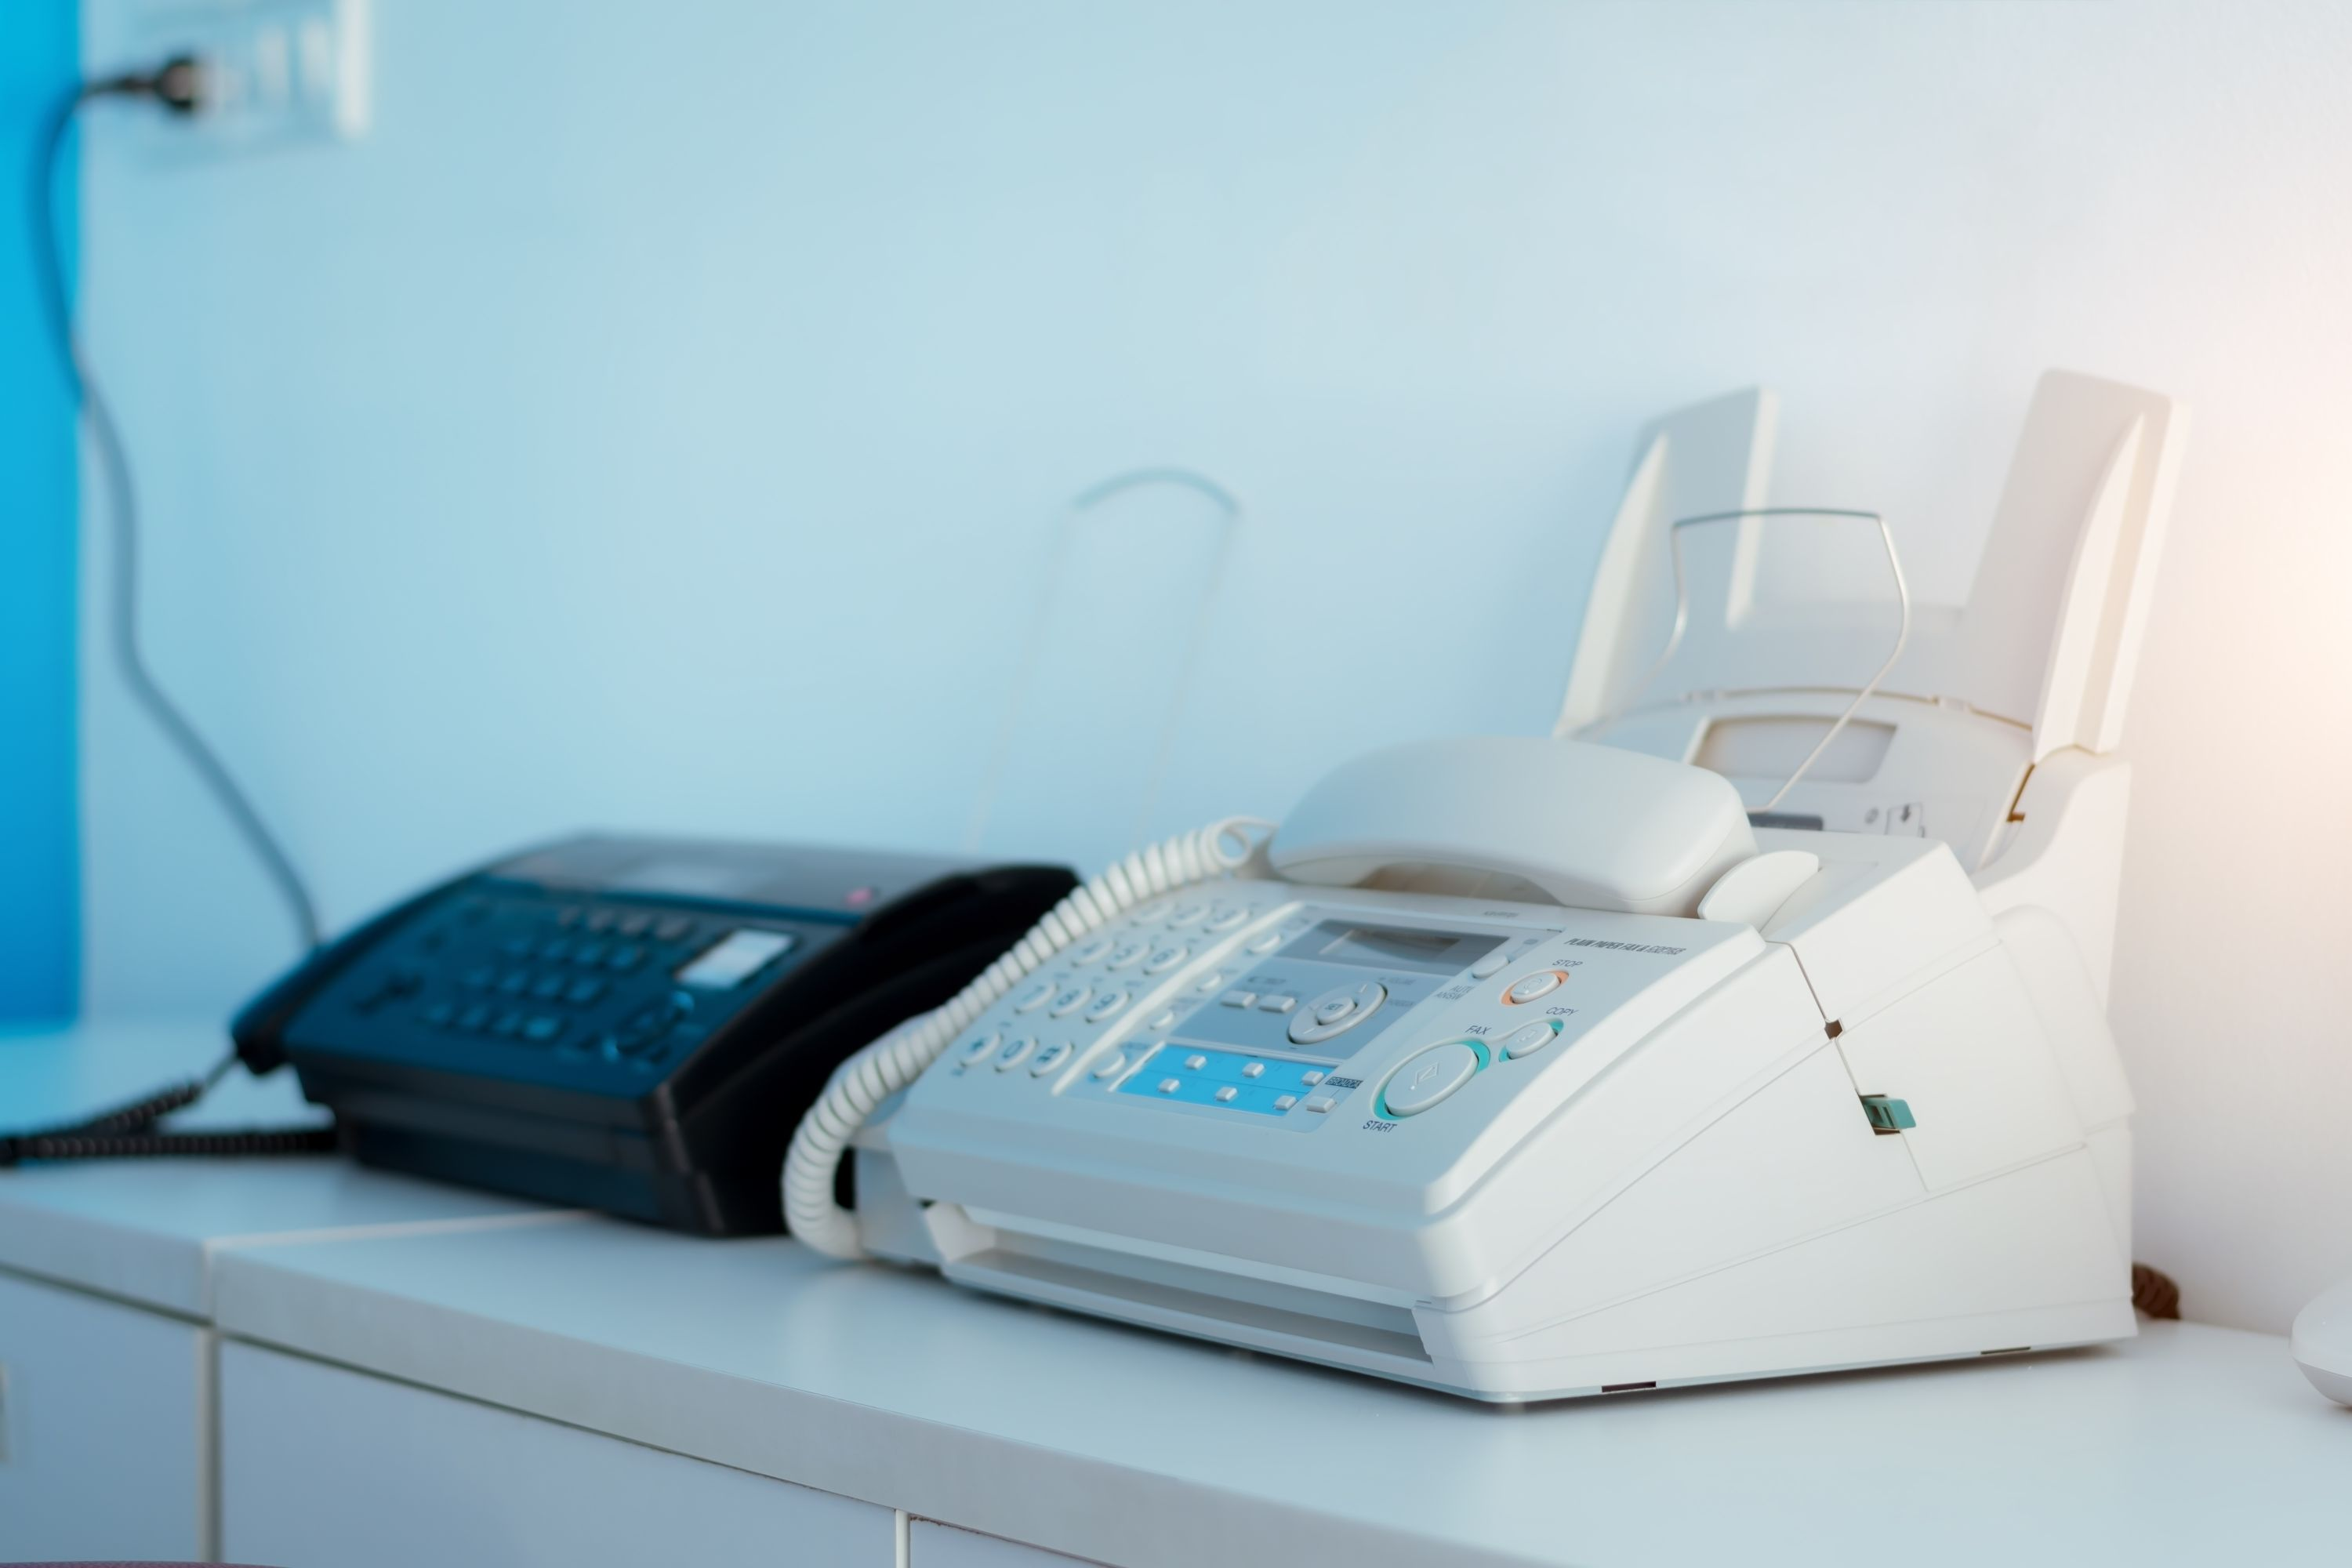 Fax Equipment & Systems